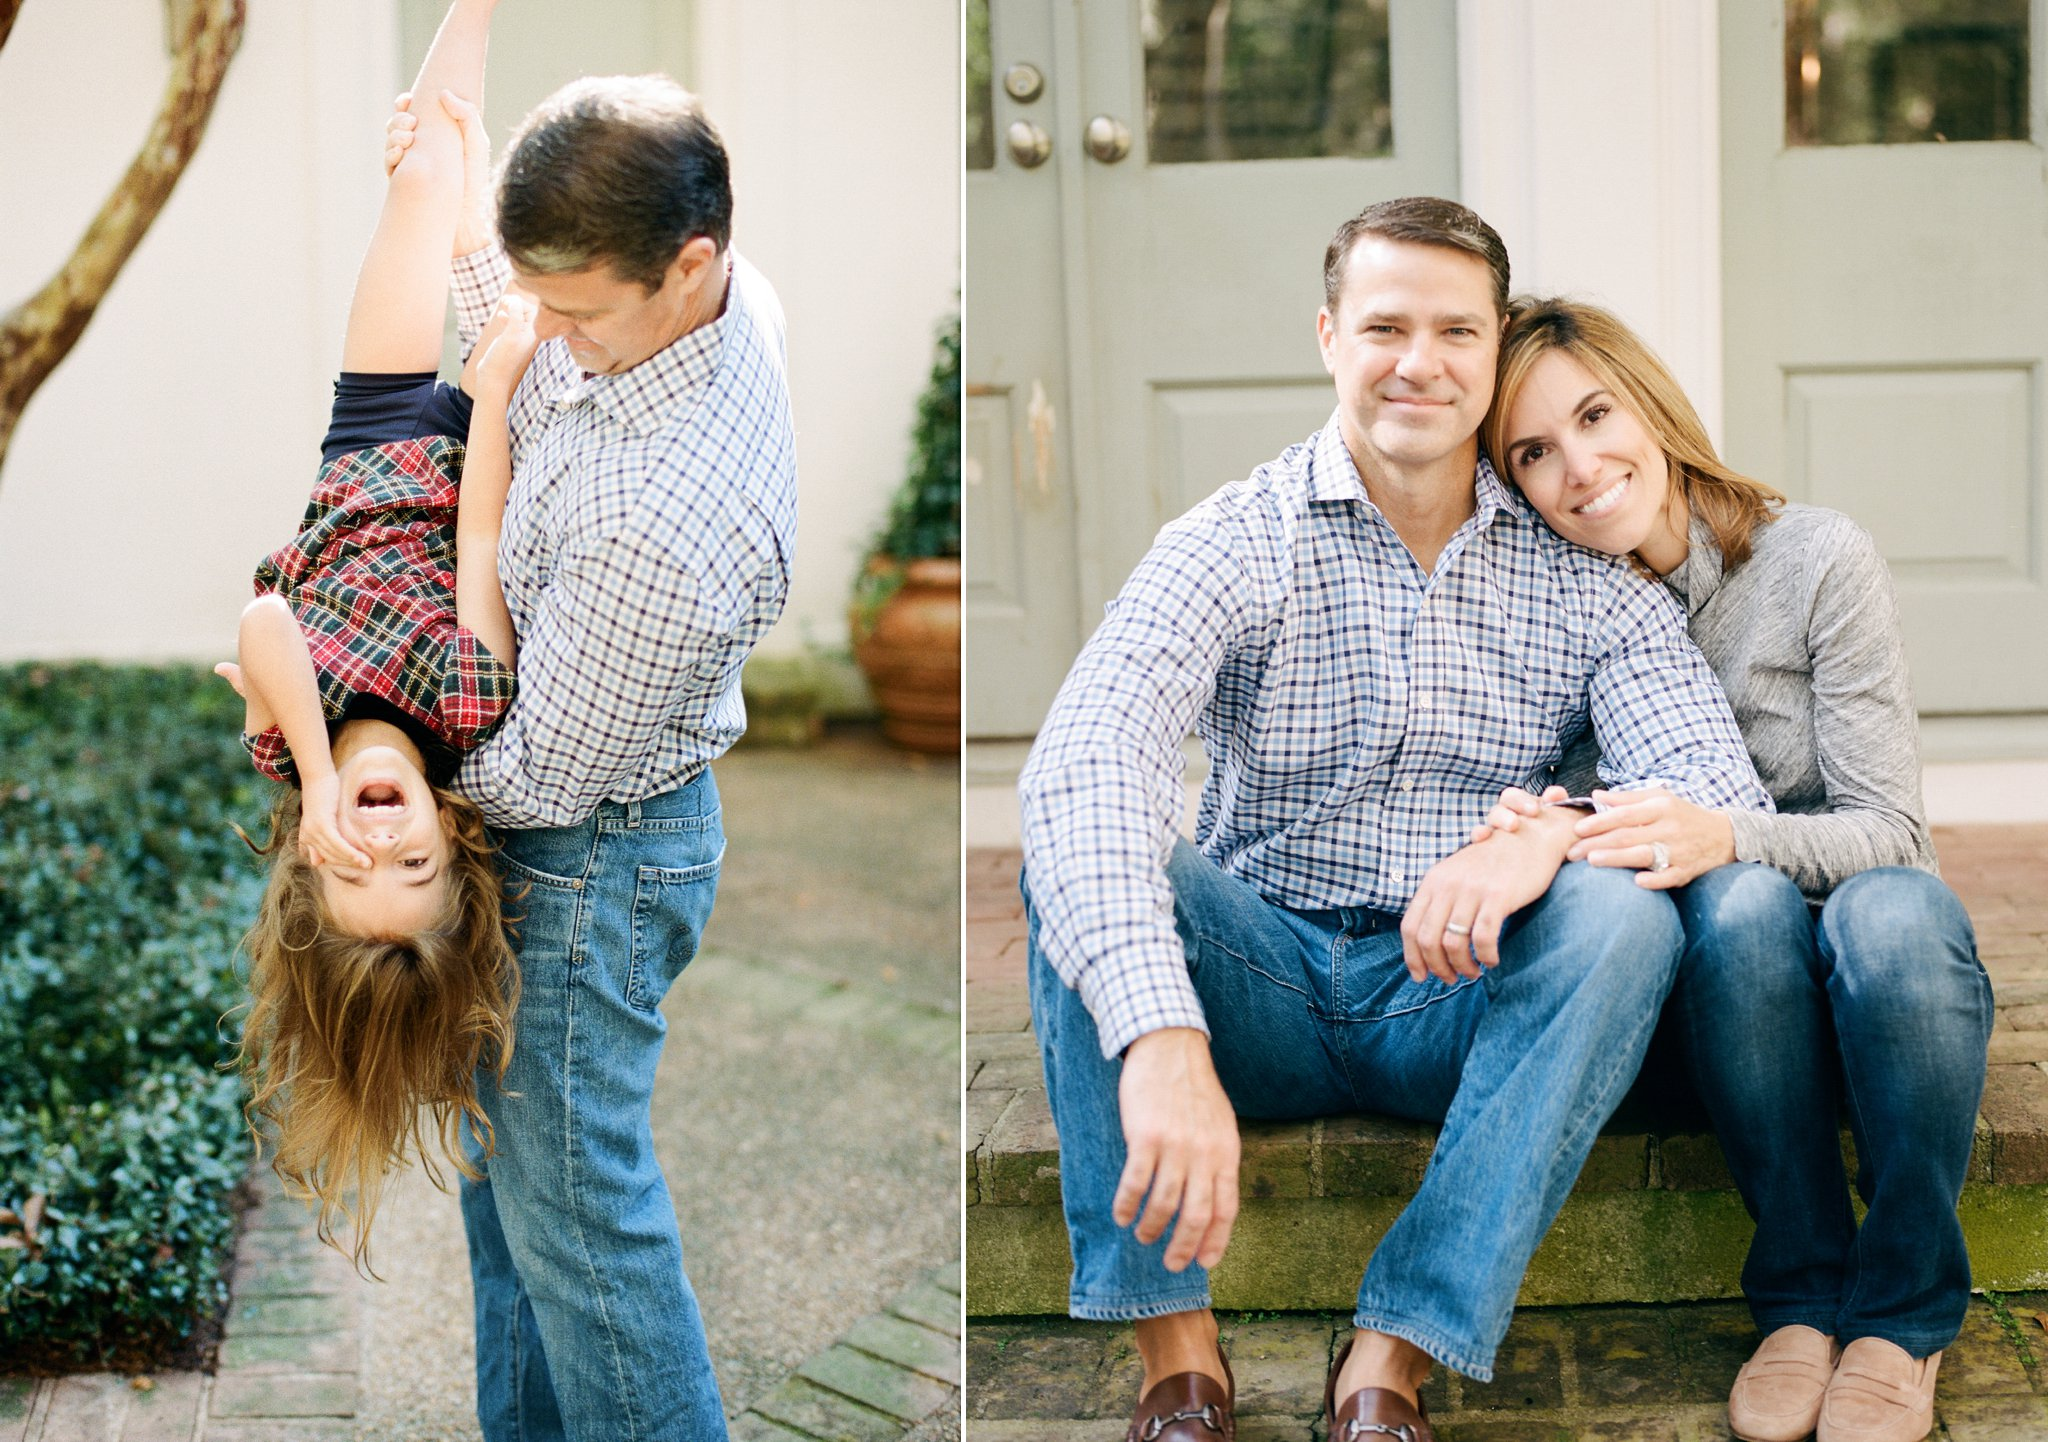 tips for the perfect holiday photos west palm beach family photographer shannon griffin photography_0015.jpg